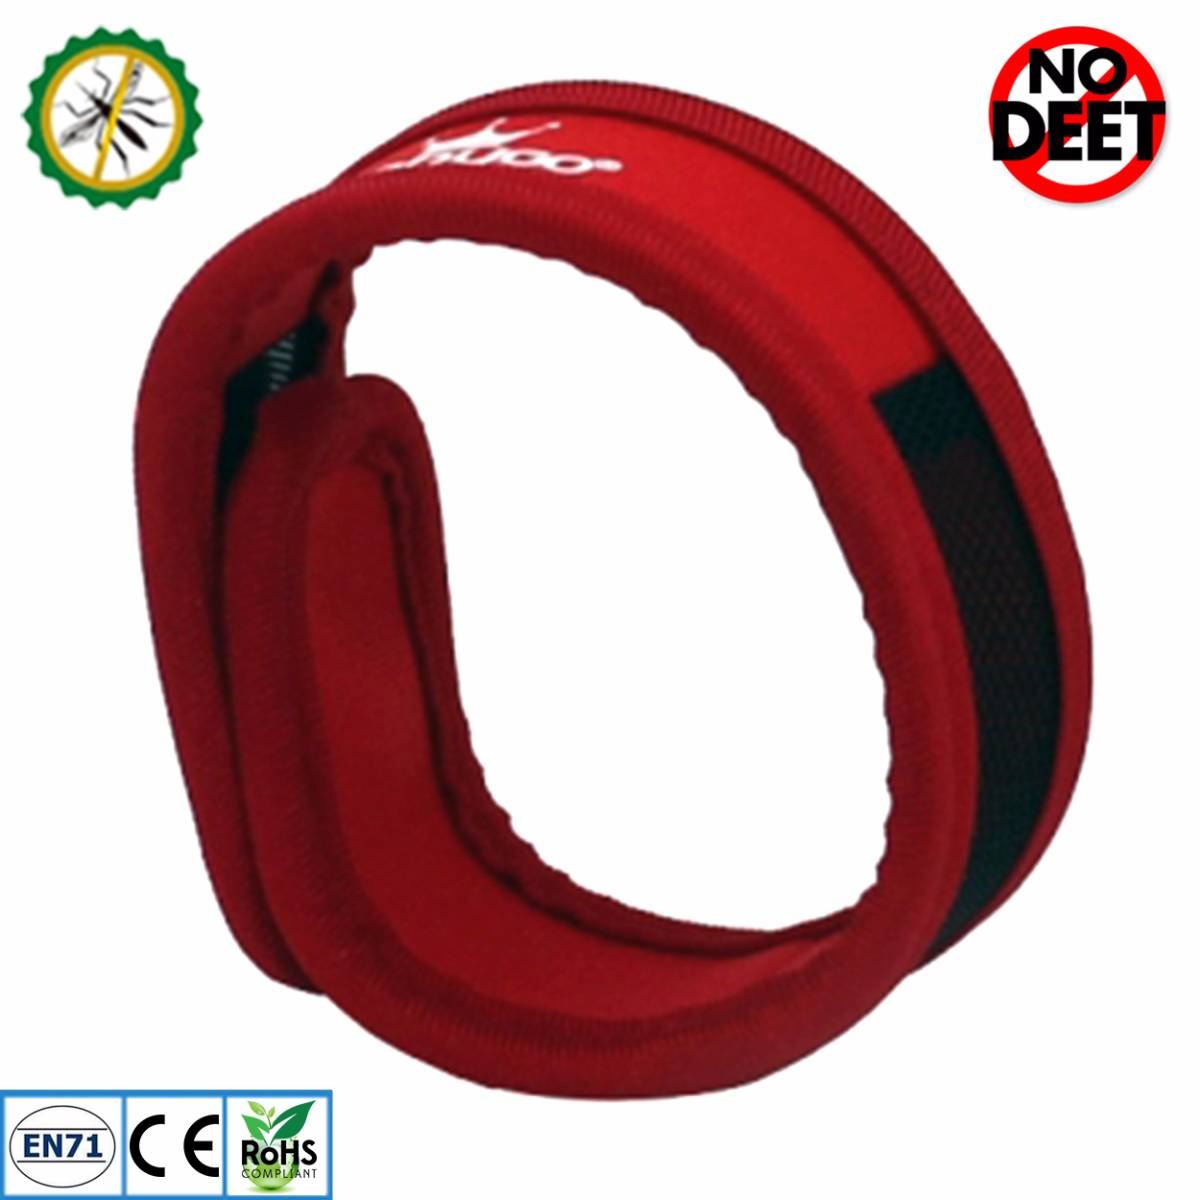 Babygo Neoprene Mosquito Repellent Wristband Red (gelang Anti Nyamuk)